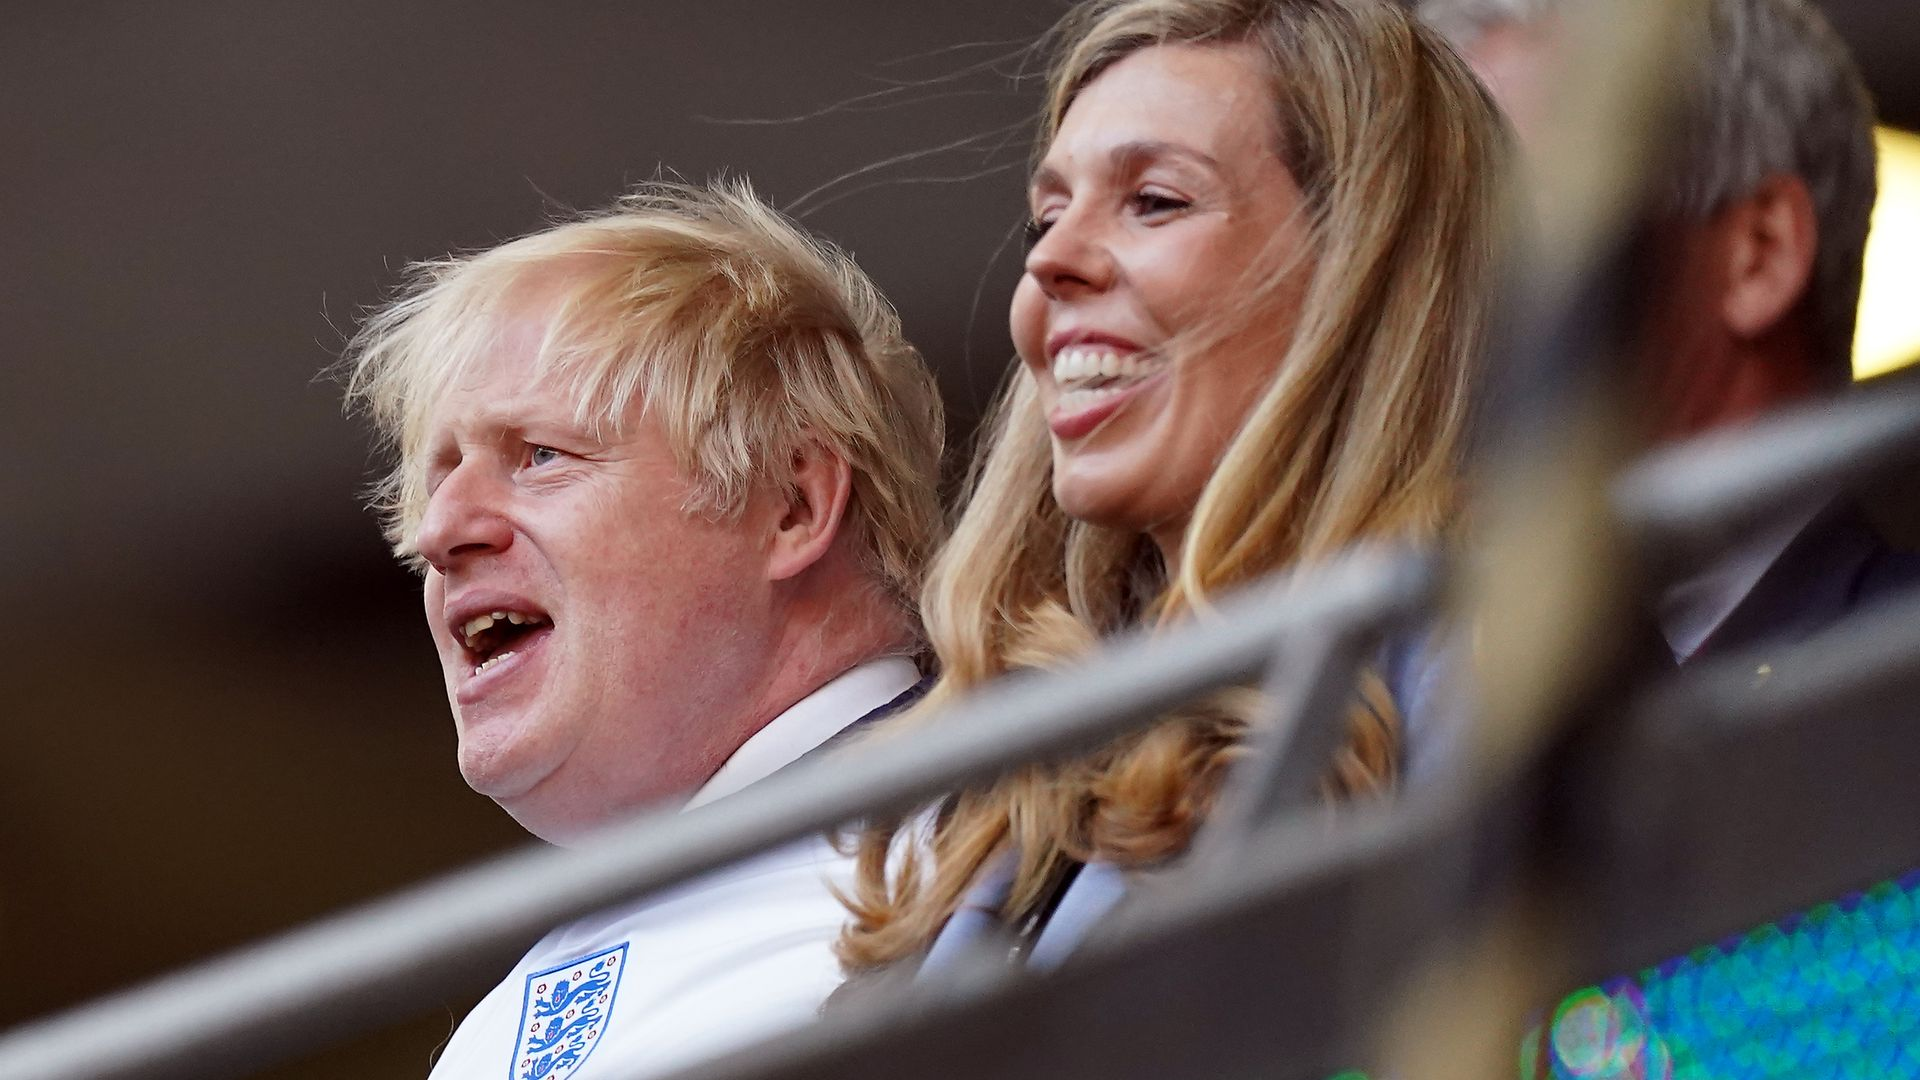 Prime minister Boris Johnson and Carrie Johnson in the stands during the UEFA Euro 2020 semi final match - Credit: PA